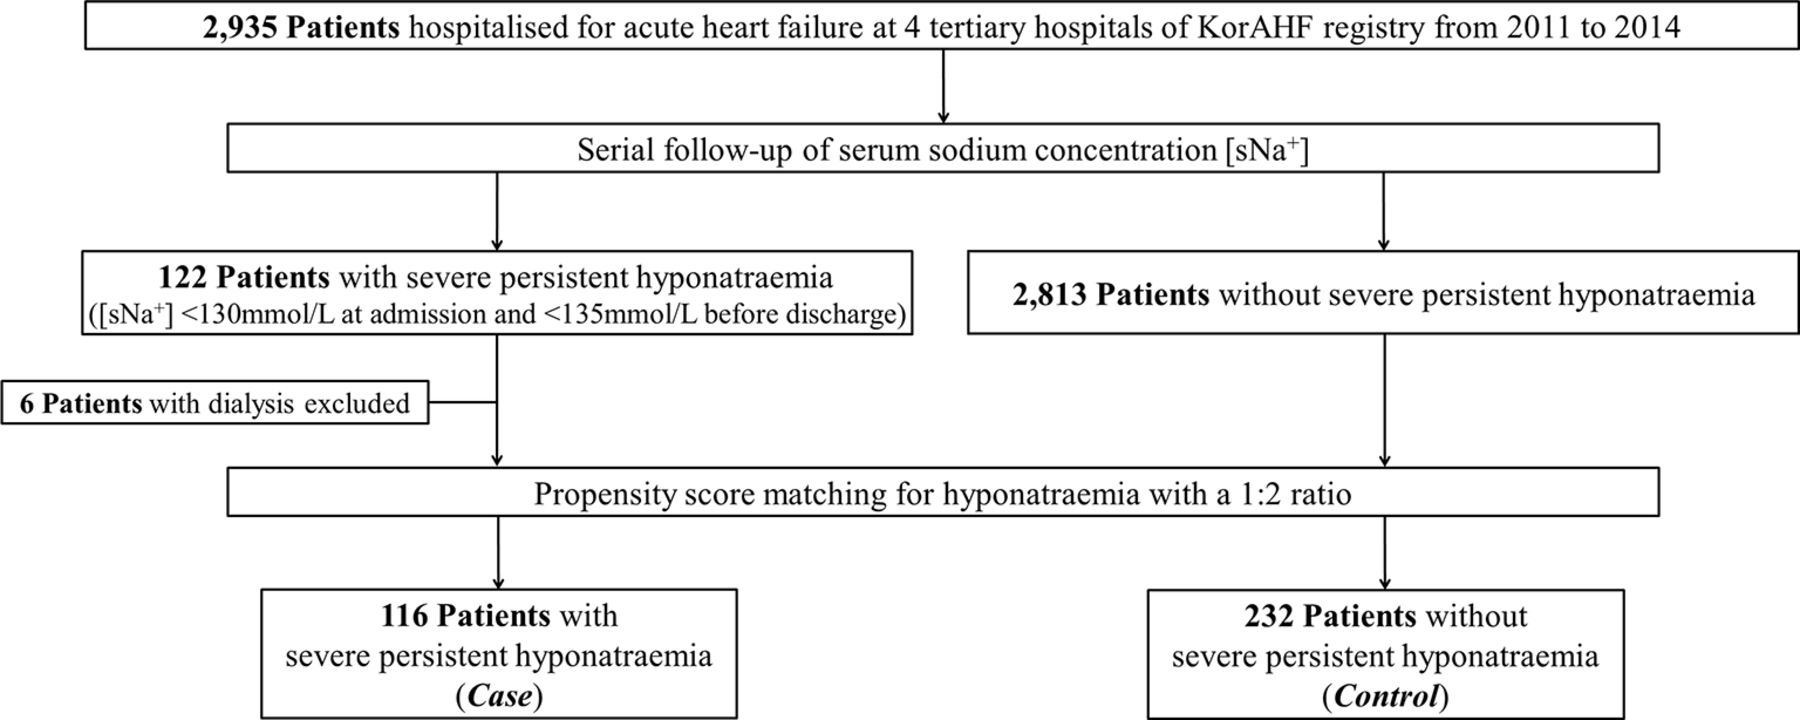 Hyponatraemia and its prognosis in acute heart failure is related to